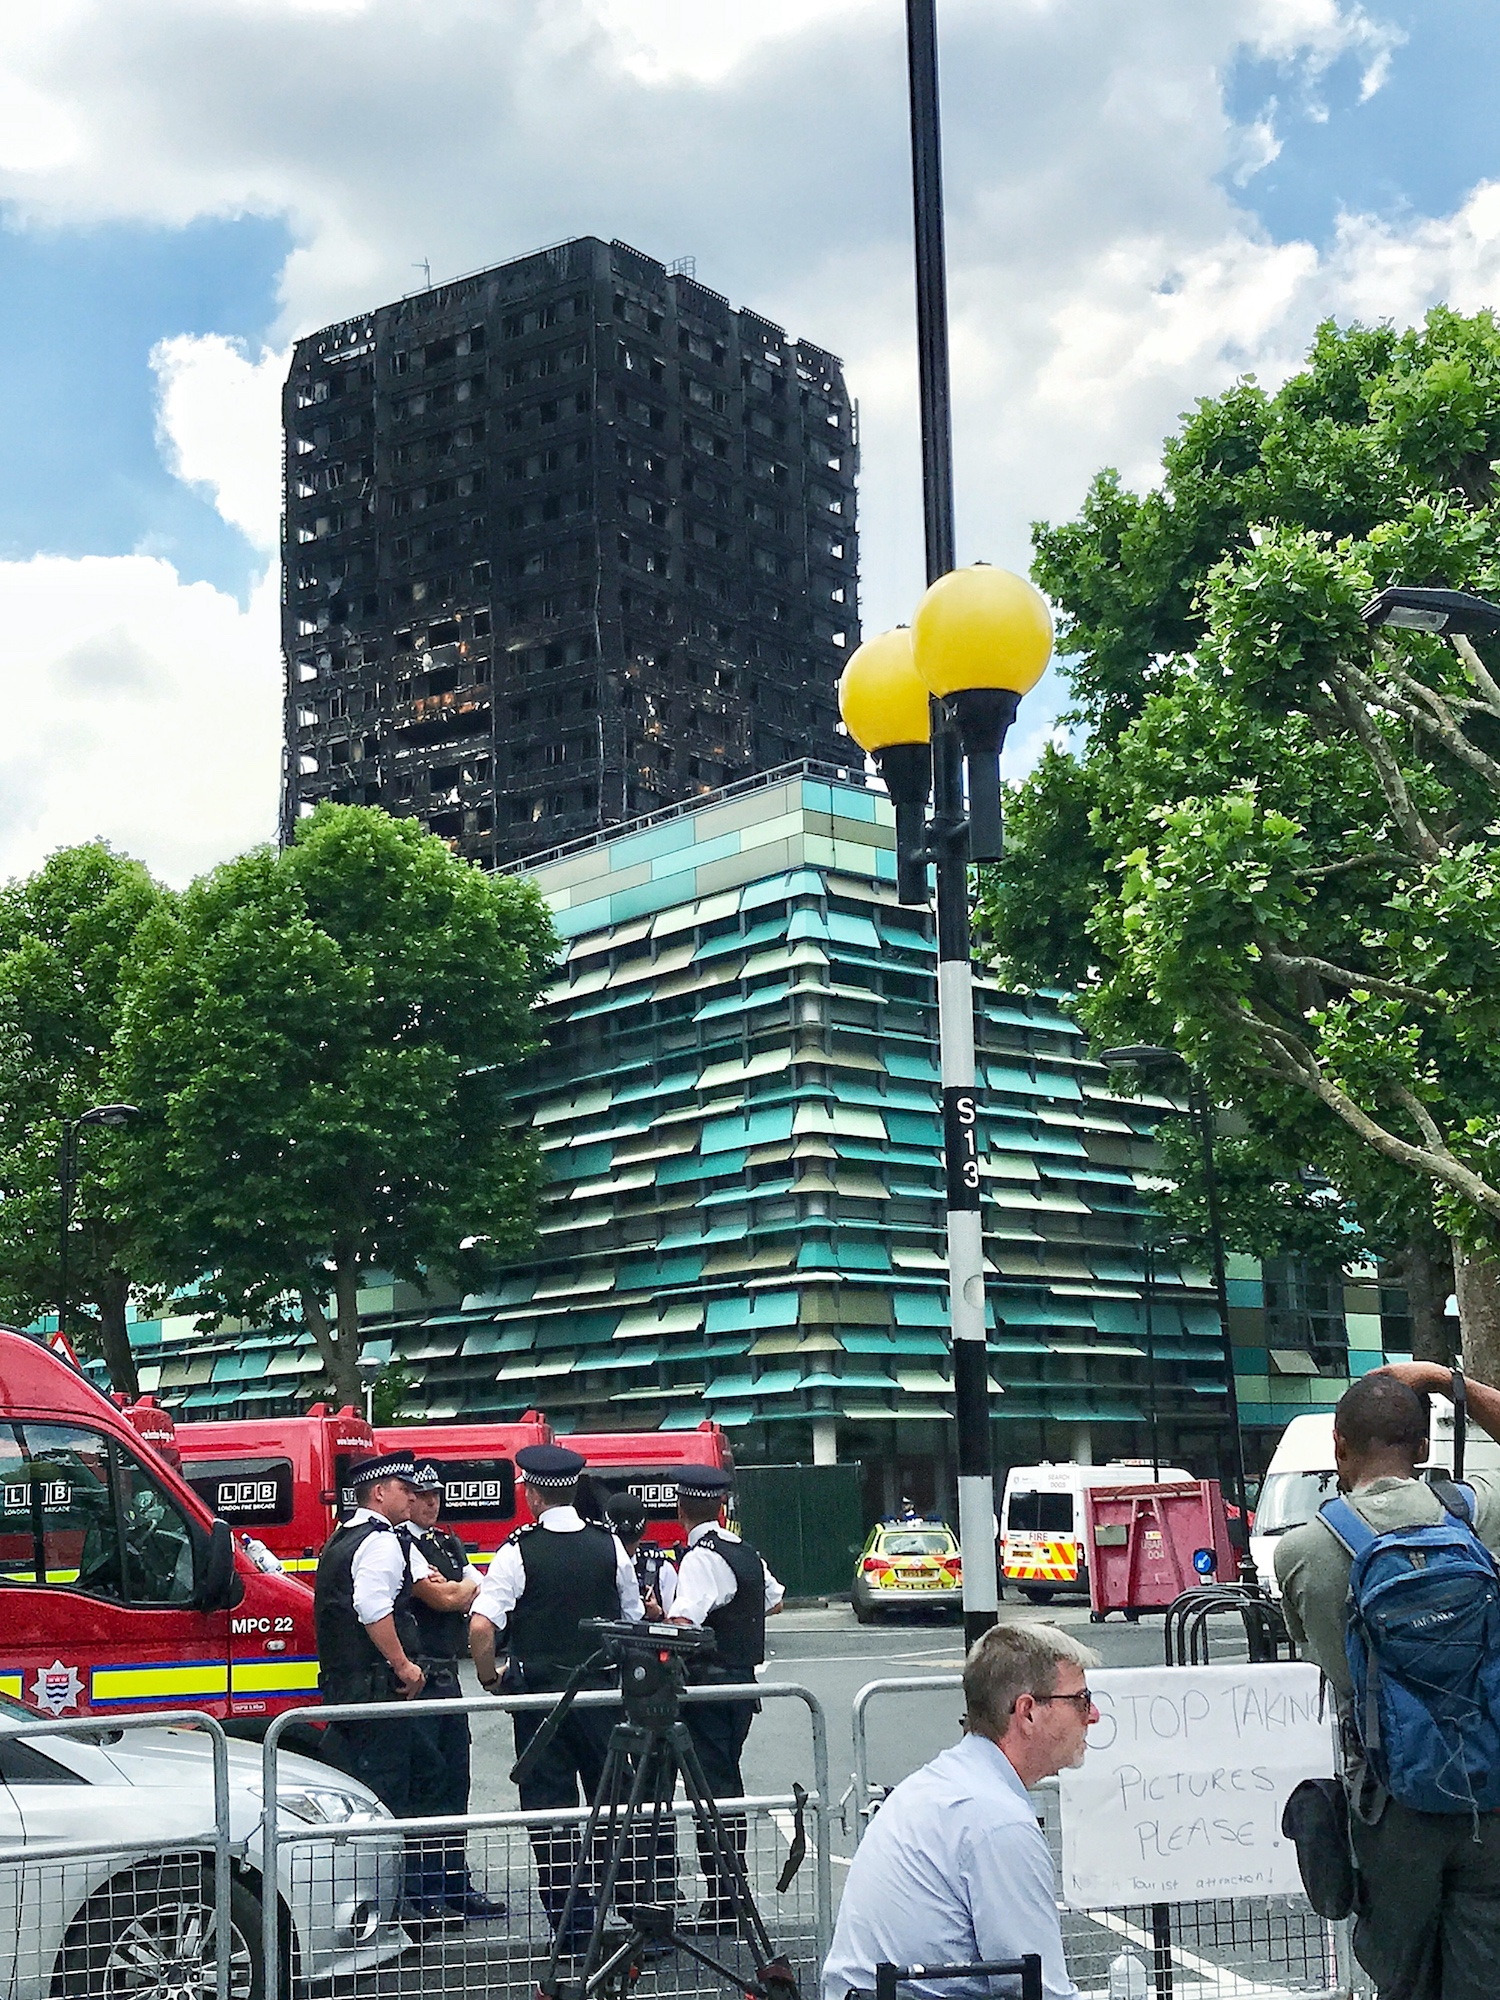 The remains of the Grenfell Tower after a devastating fire. London